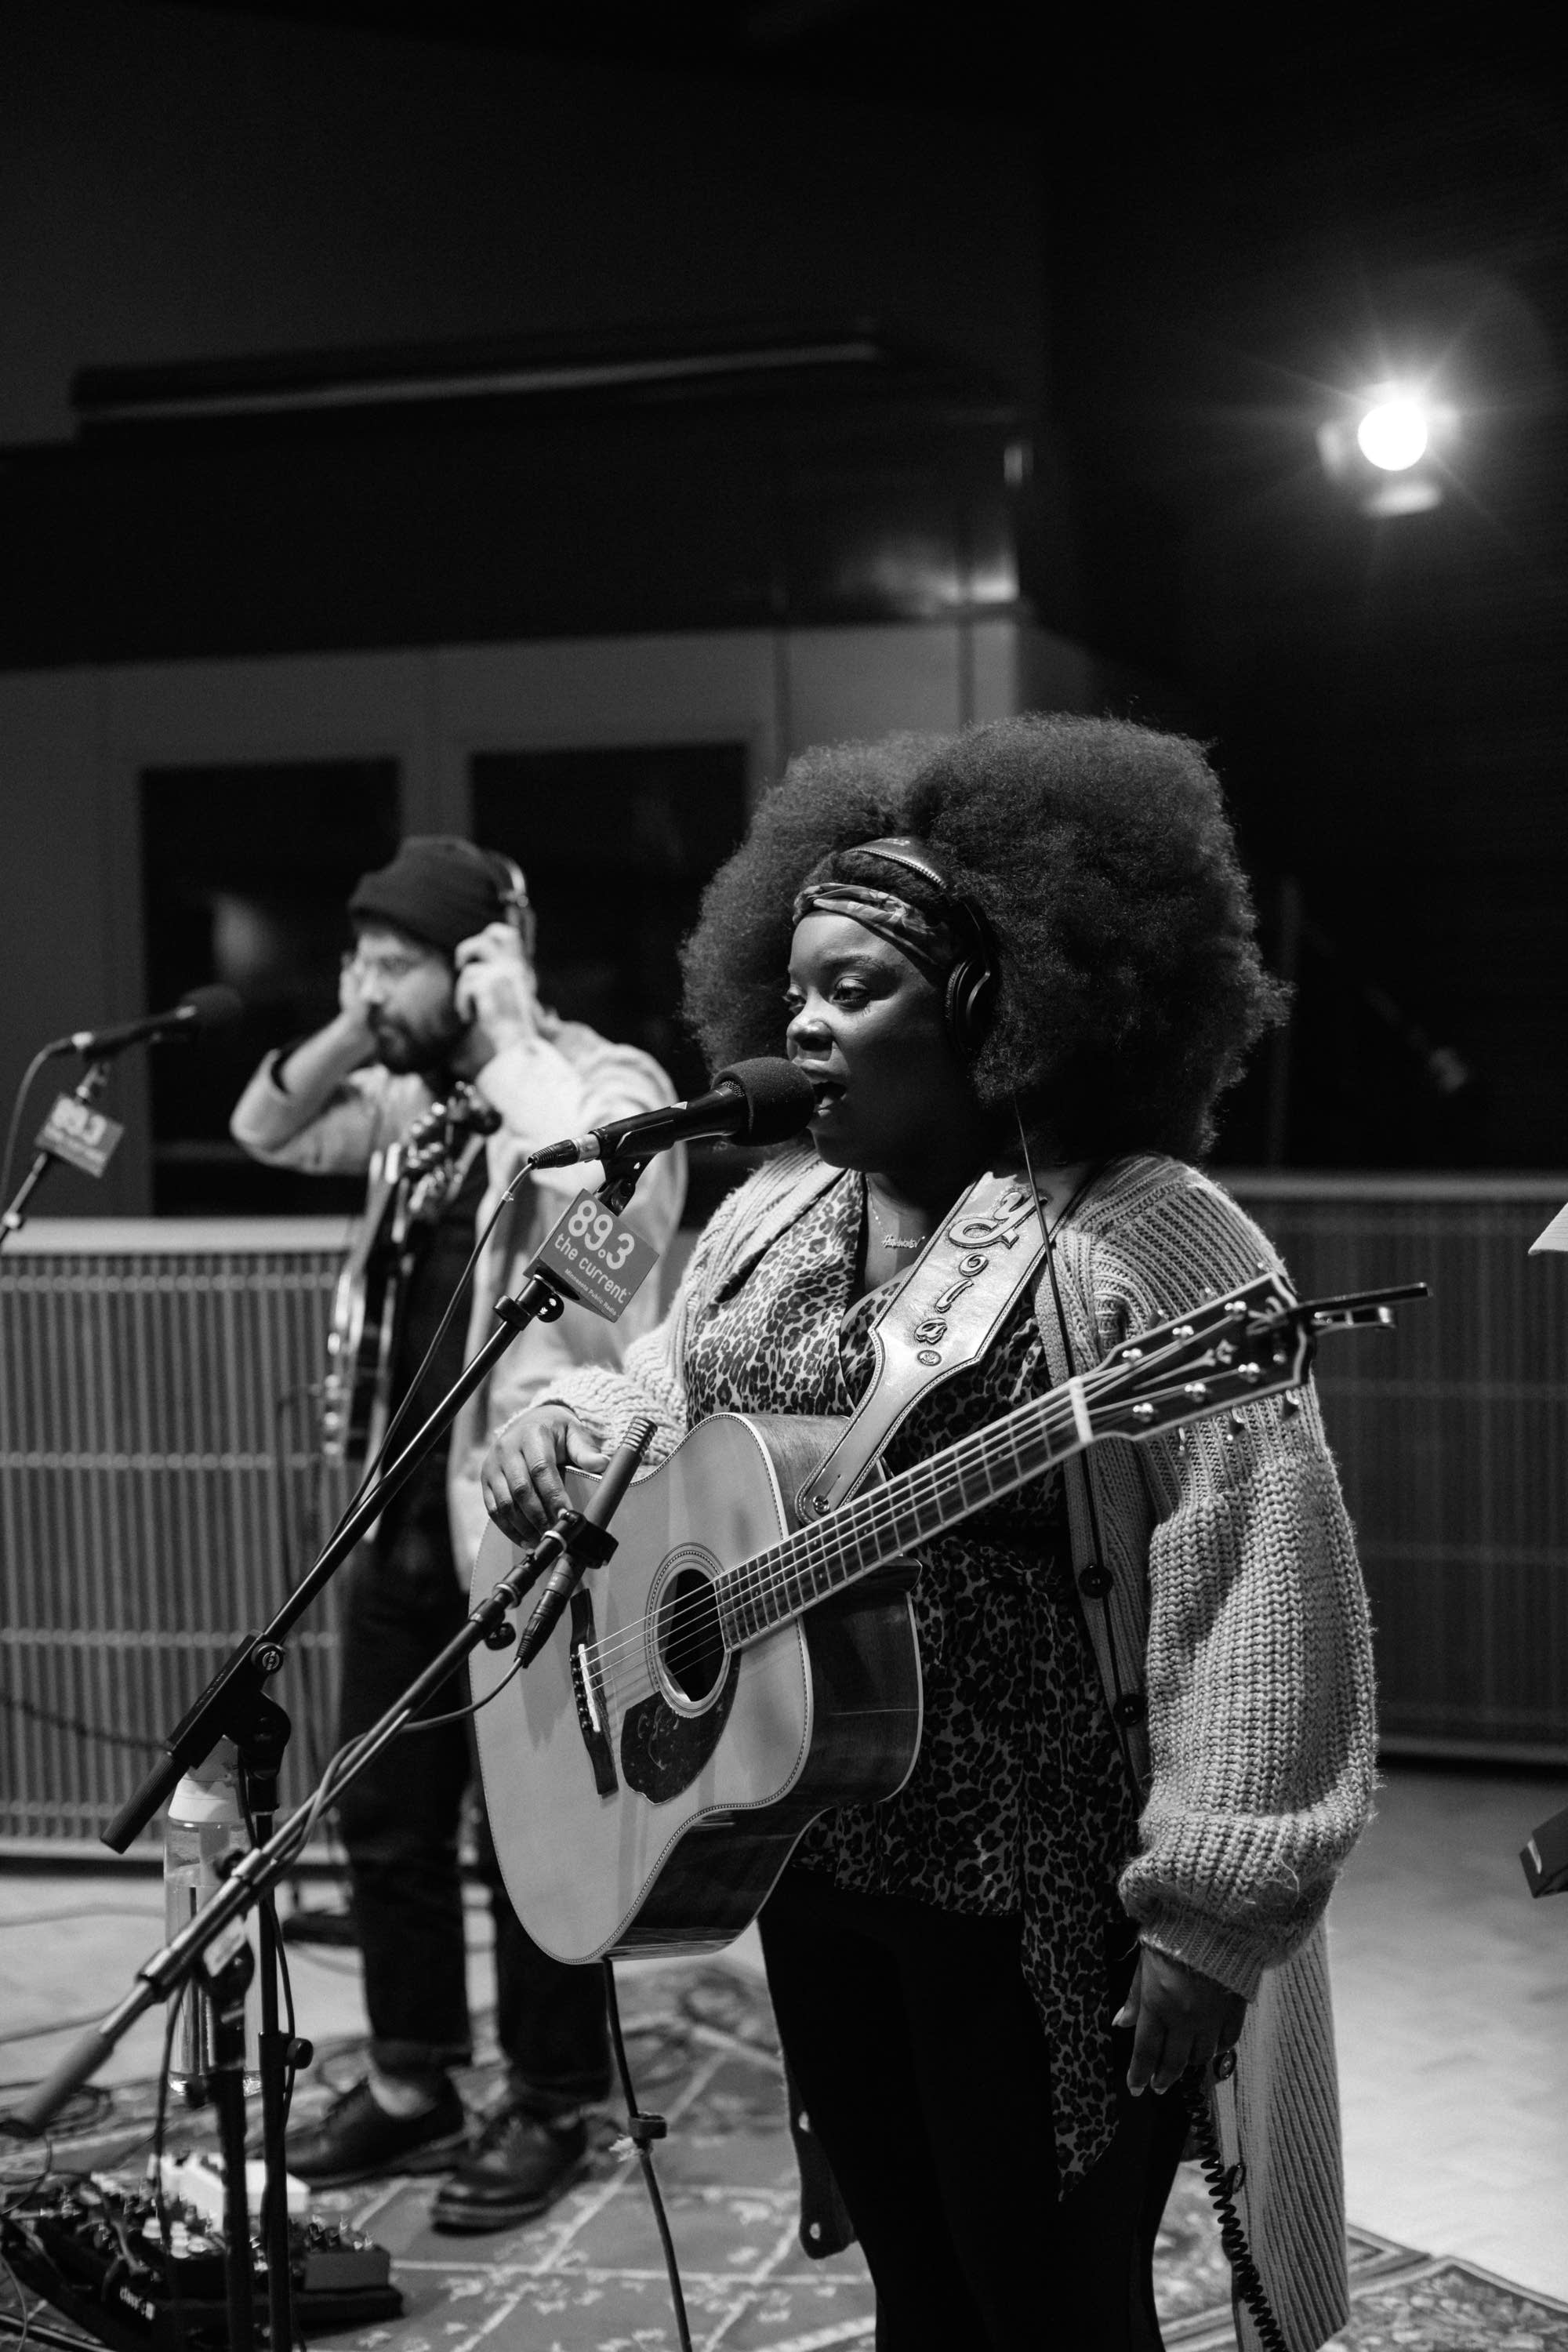 Yola performs in The Current studio